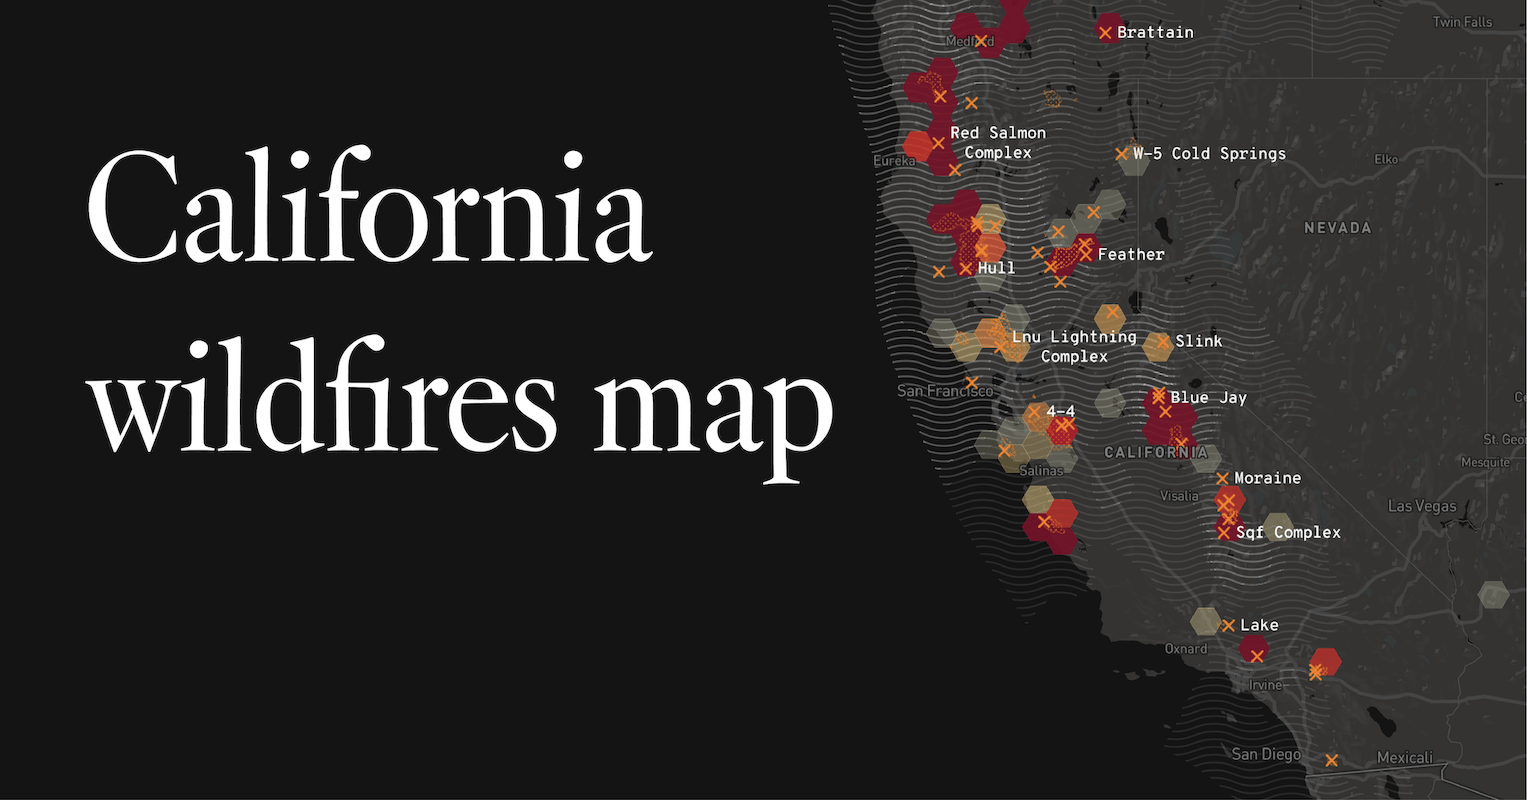 Kevin bonsor in just seconds, a spark or even the sun's heat alone. 2021 California Fire Map Los Angeles Times